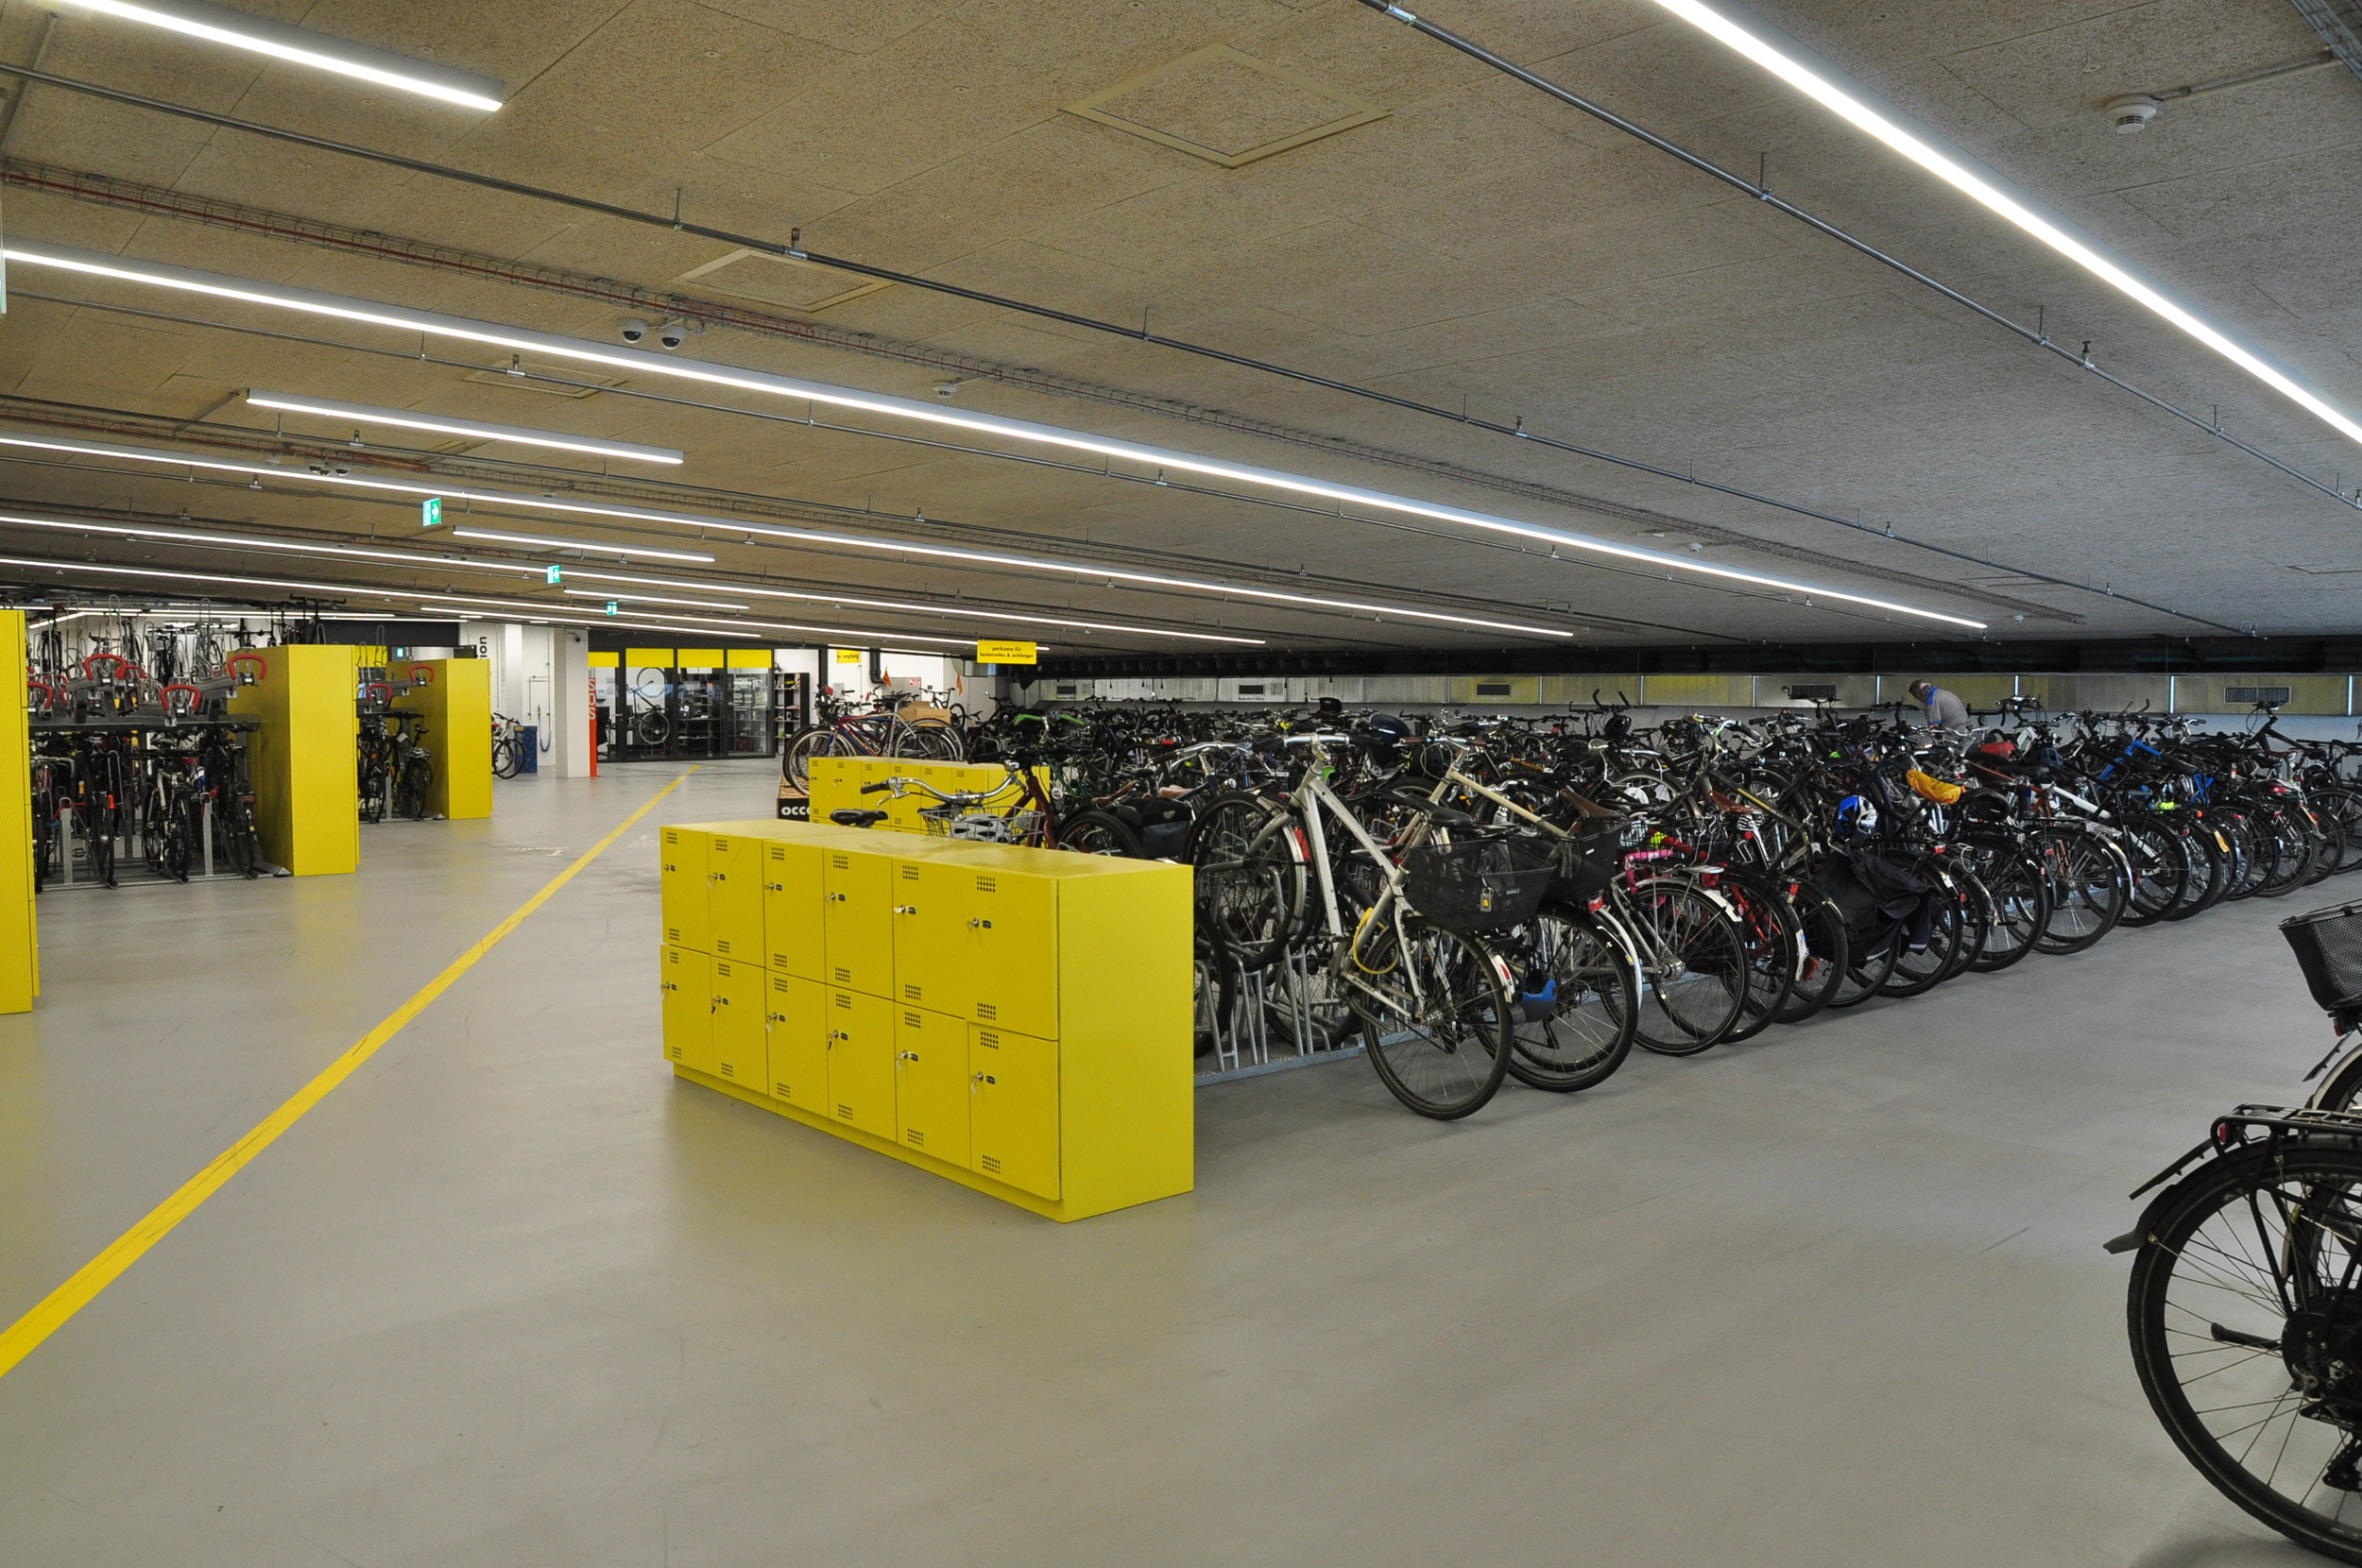 Bern has built some quality spaces for bicycle users, even though almost all of its parking facilities have already reached full capacity.